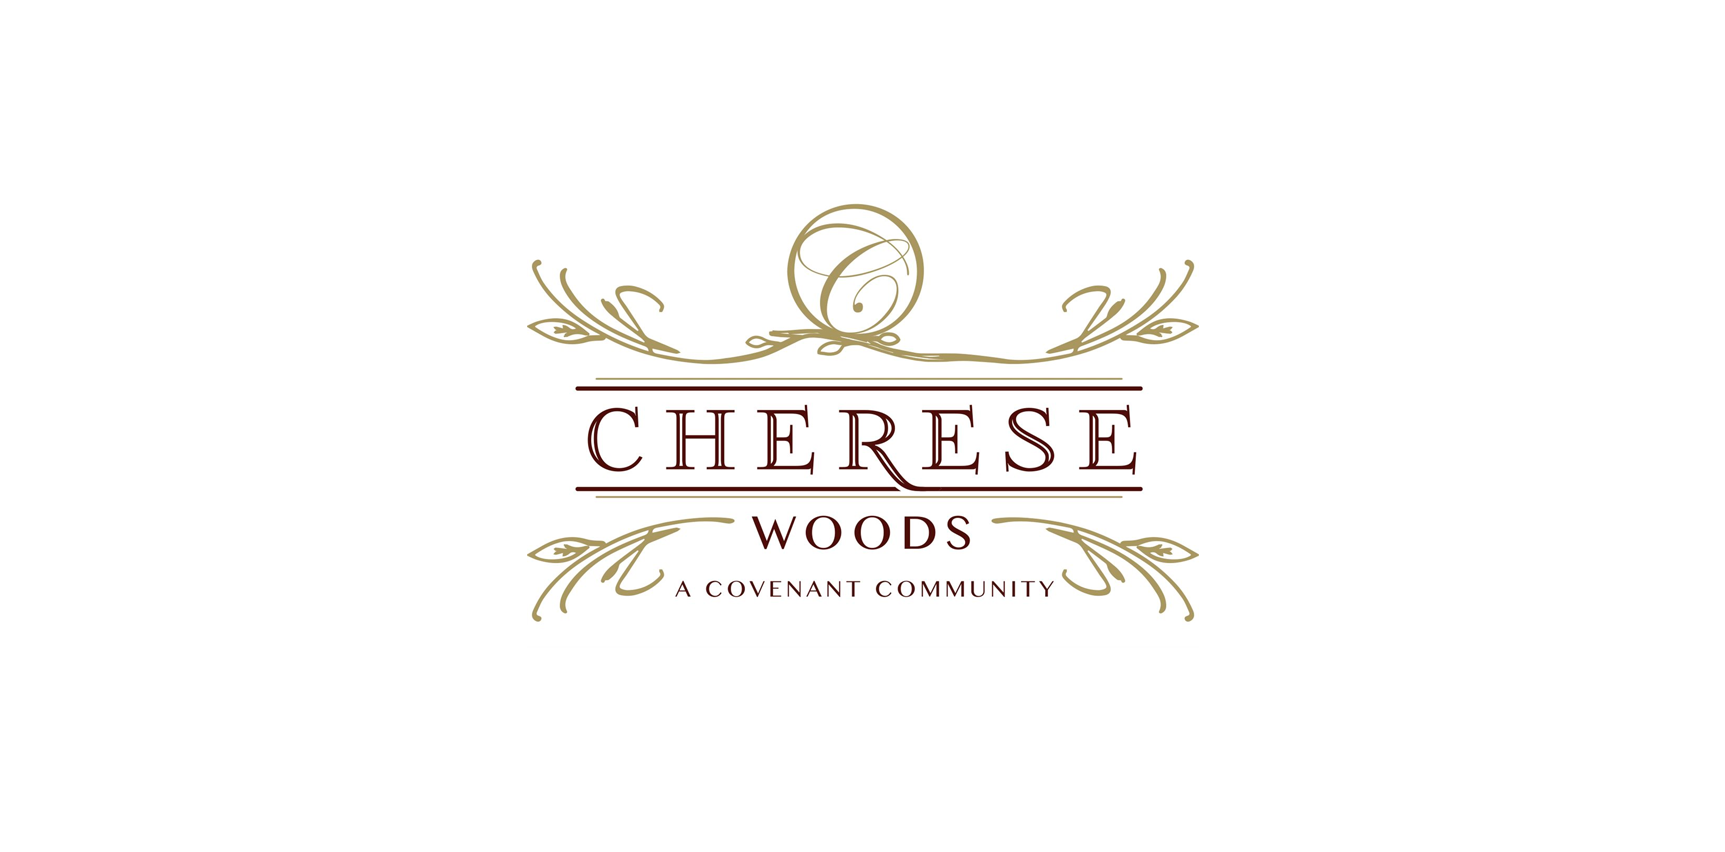 House for sale: Cherese Woods